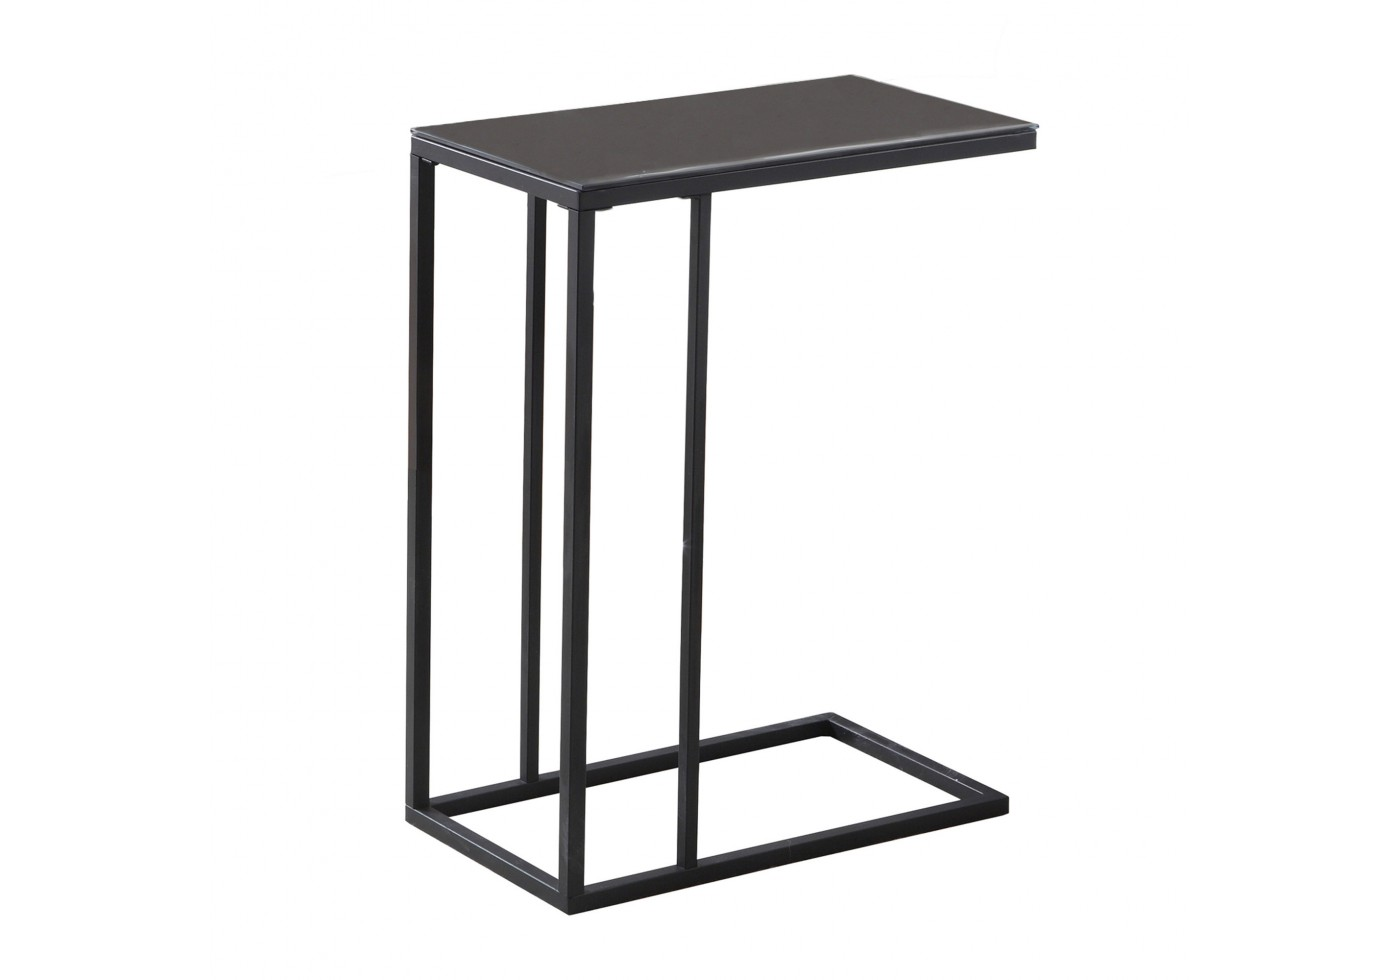 accent table black metal tempered glass outdoor umbrella stand weights white half moon console queen size cement dining counter height kitchen set round pedestal wood target